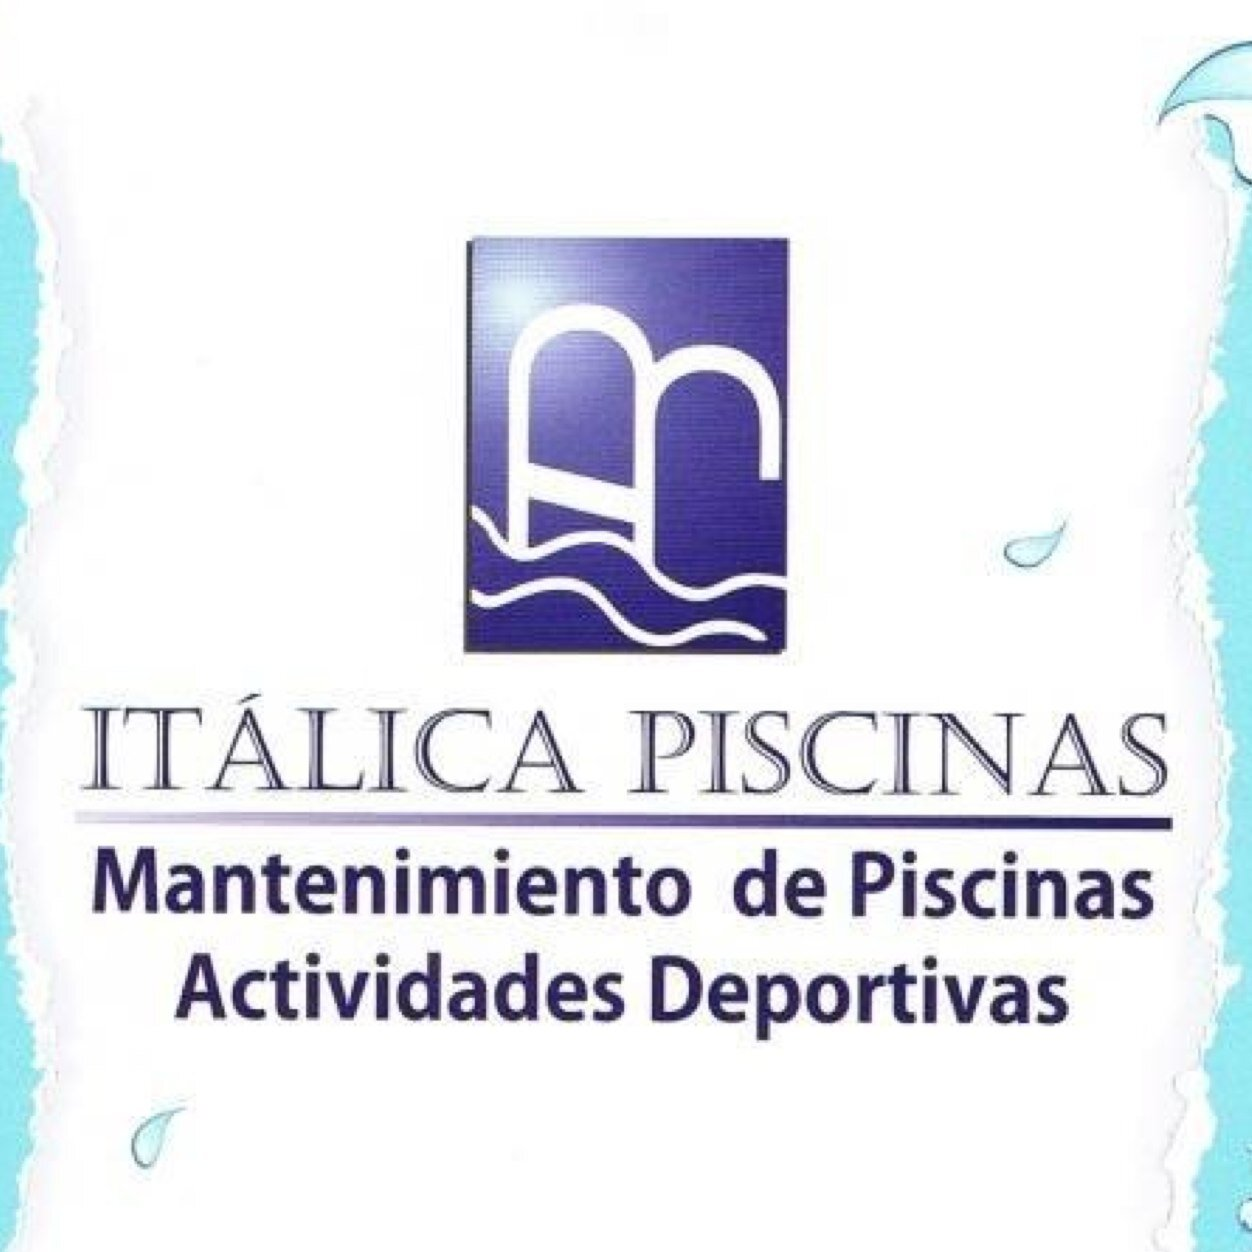 It lica piscinas italicapiscinas twitter for Italica piscinas